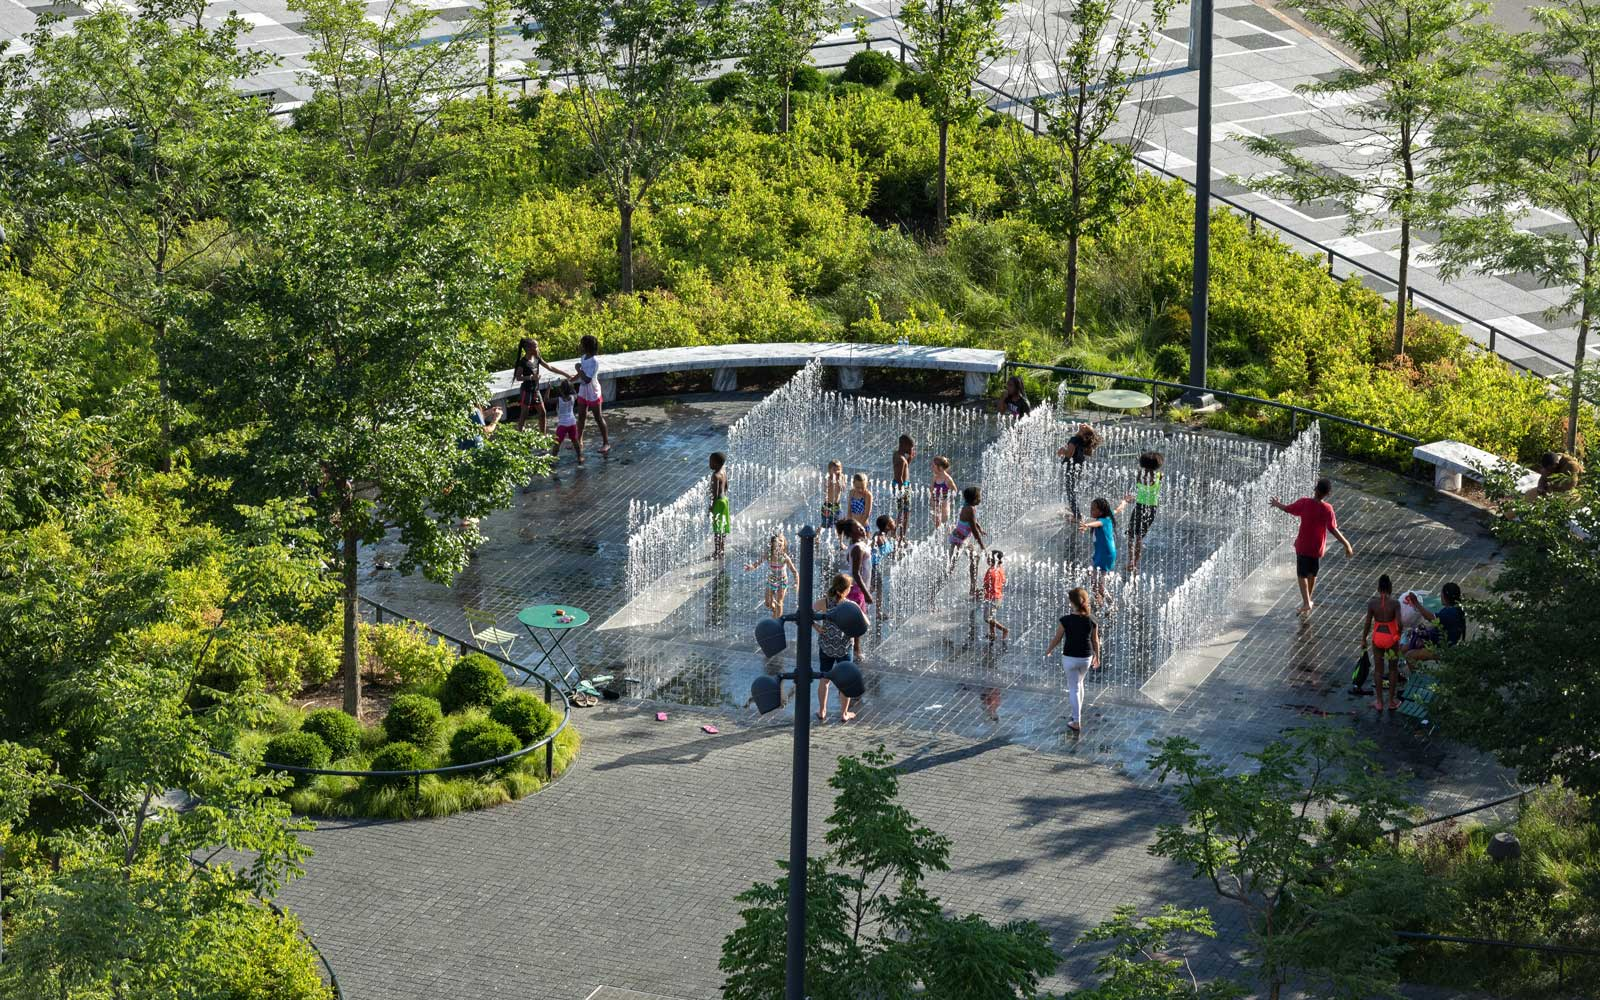 Water play area at the Arch Park in St Louis